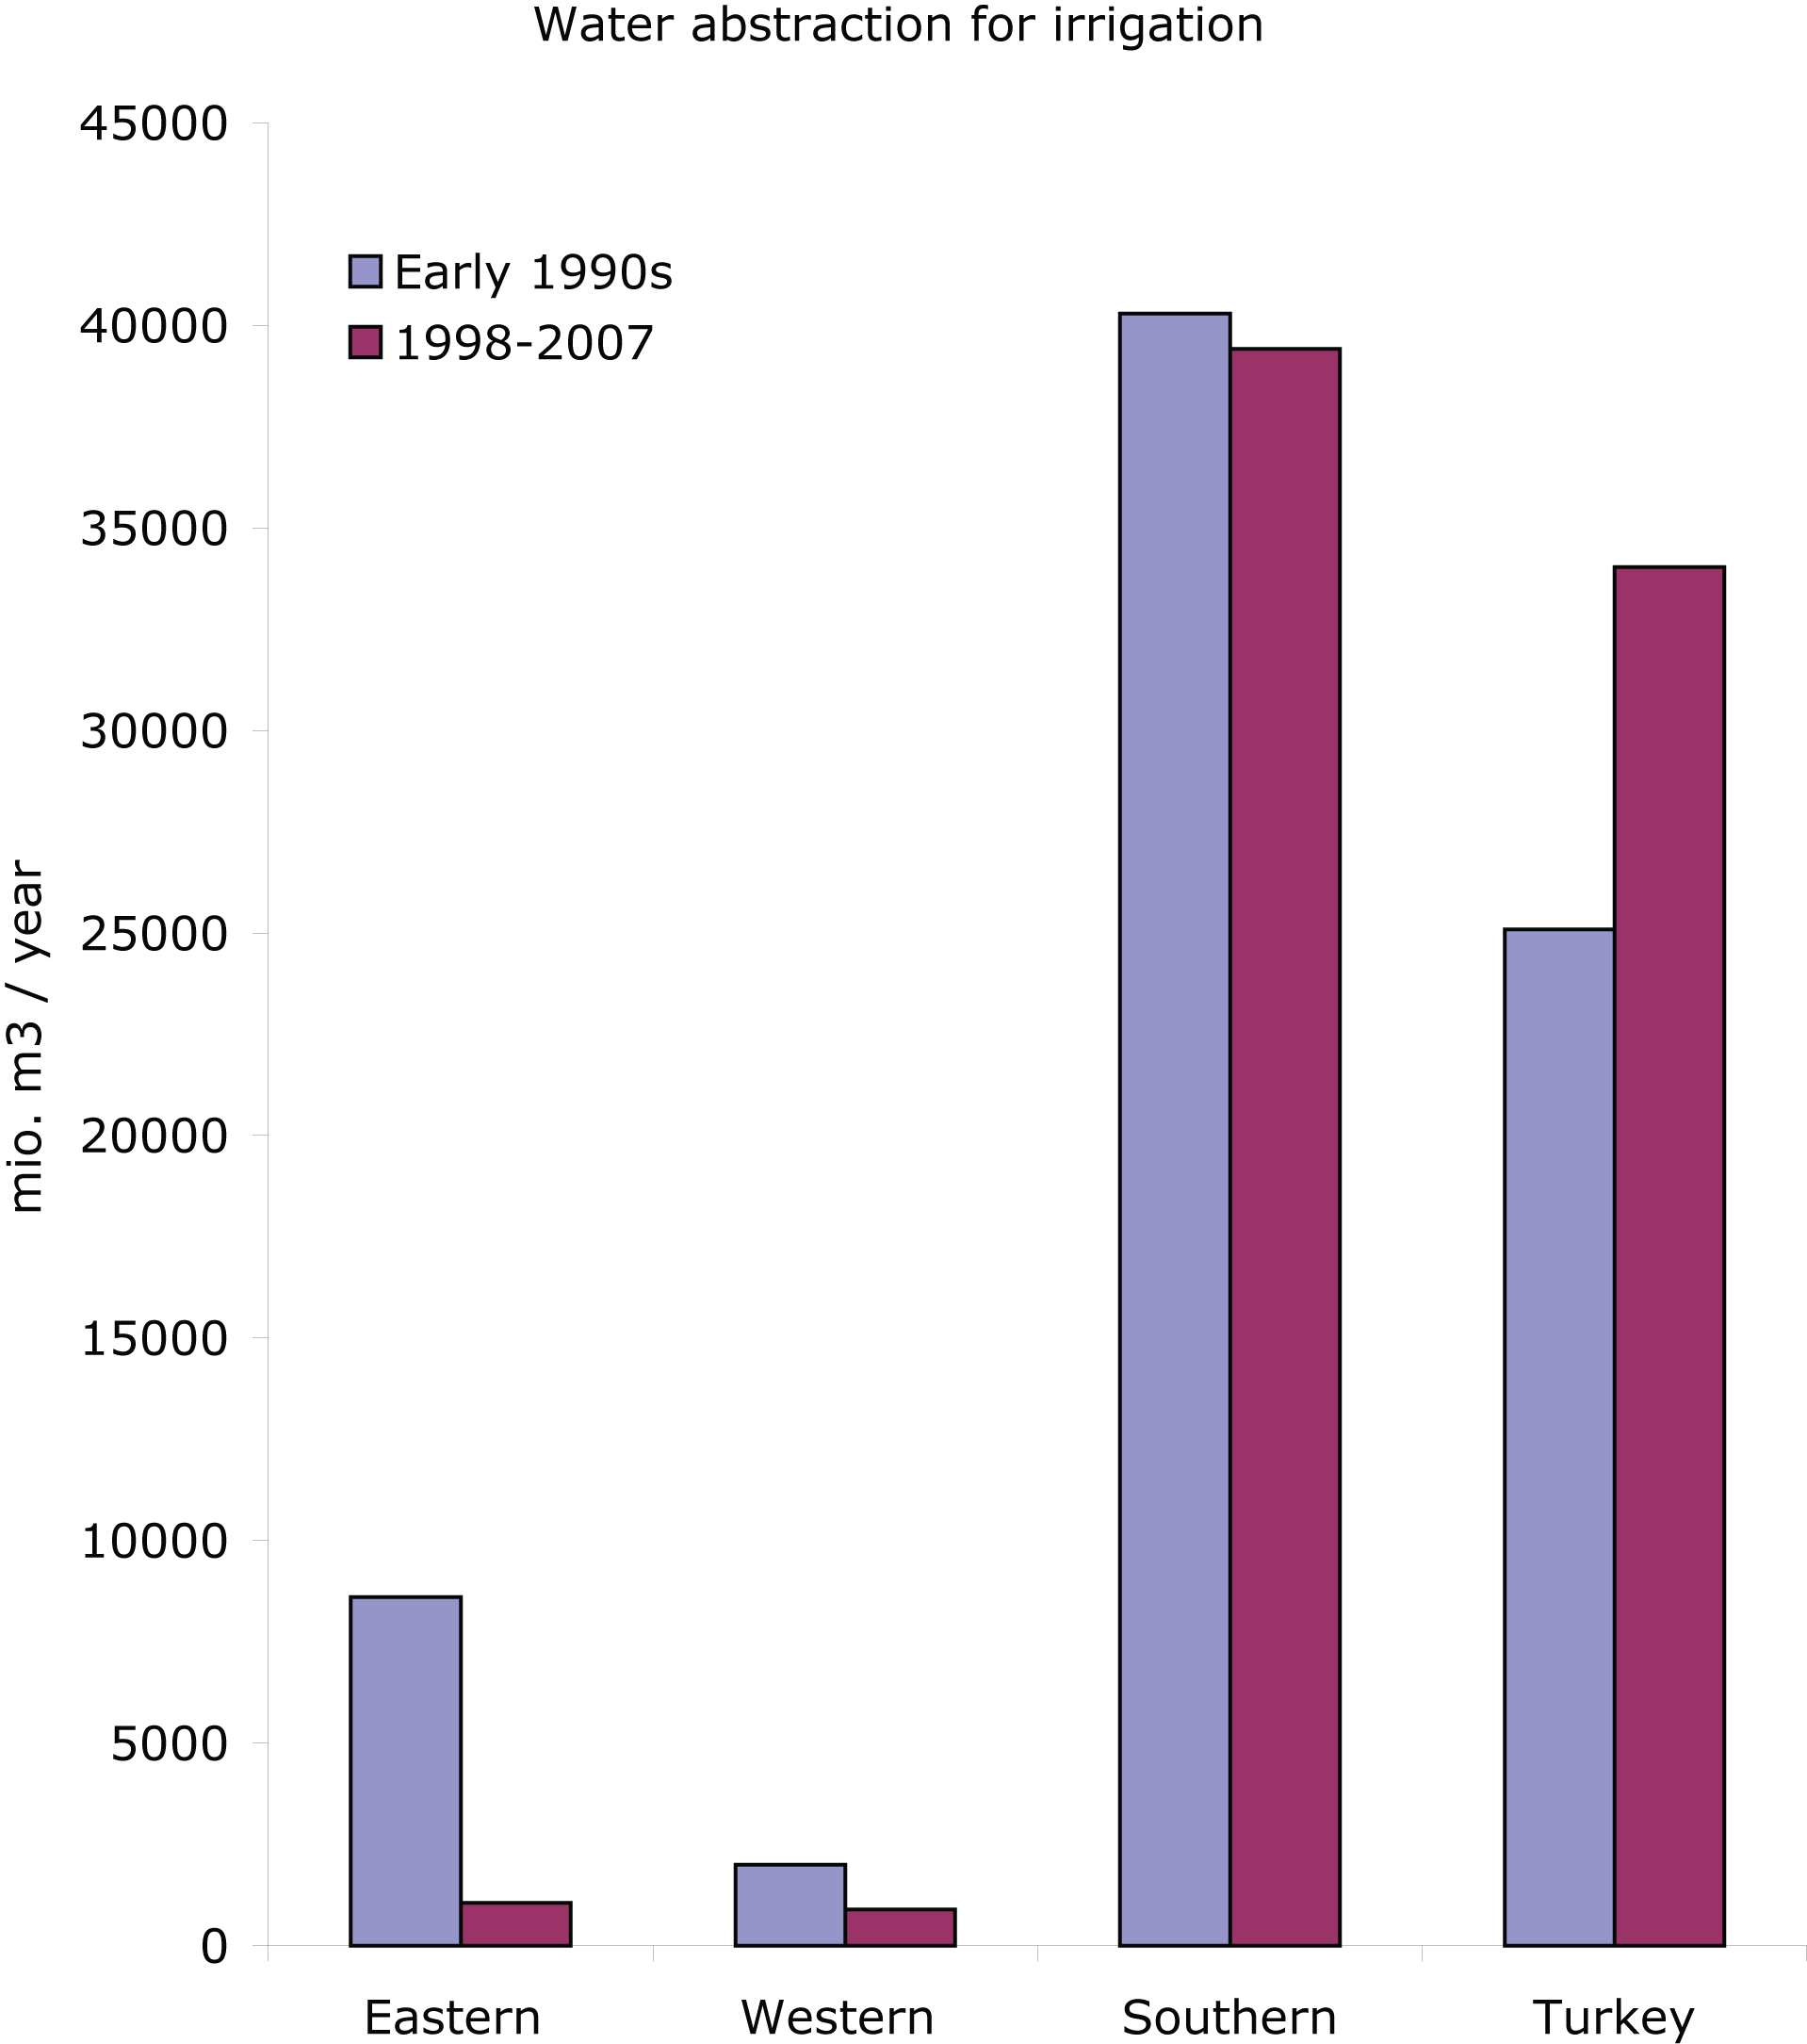 Water abstraction for irrigation (million m3/year) in early 1990s and 1998-2007